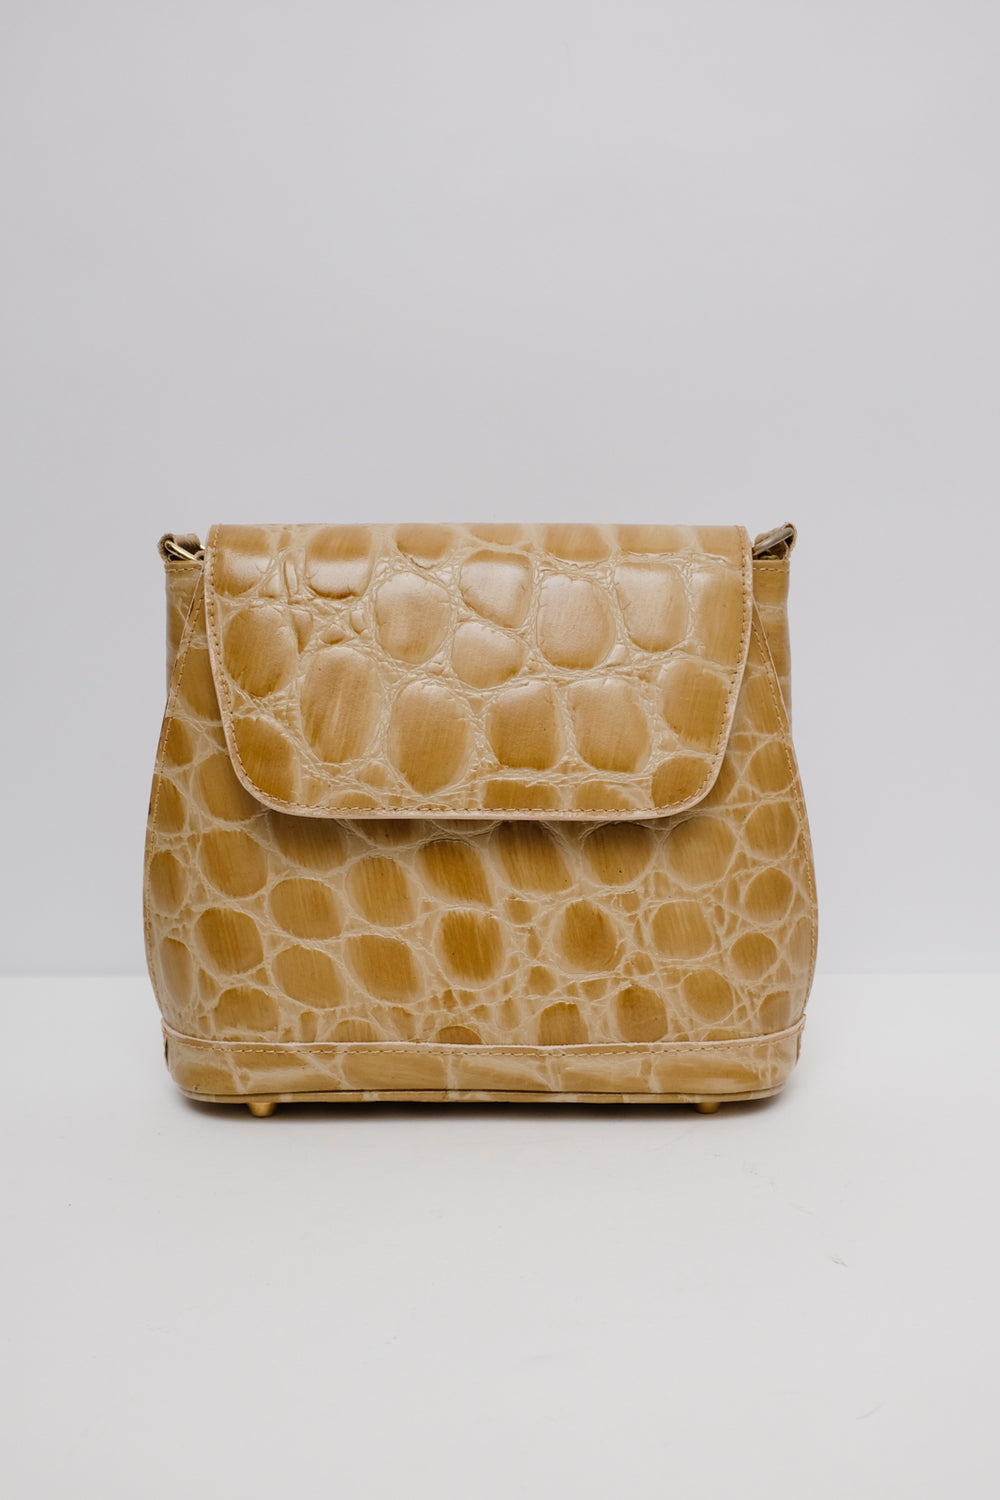 0001_BEIGE CROCO LEATHER BAG